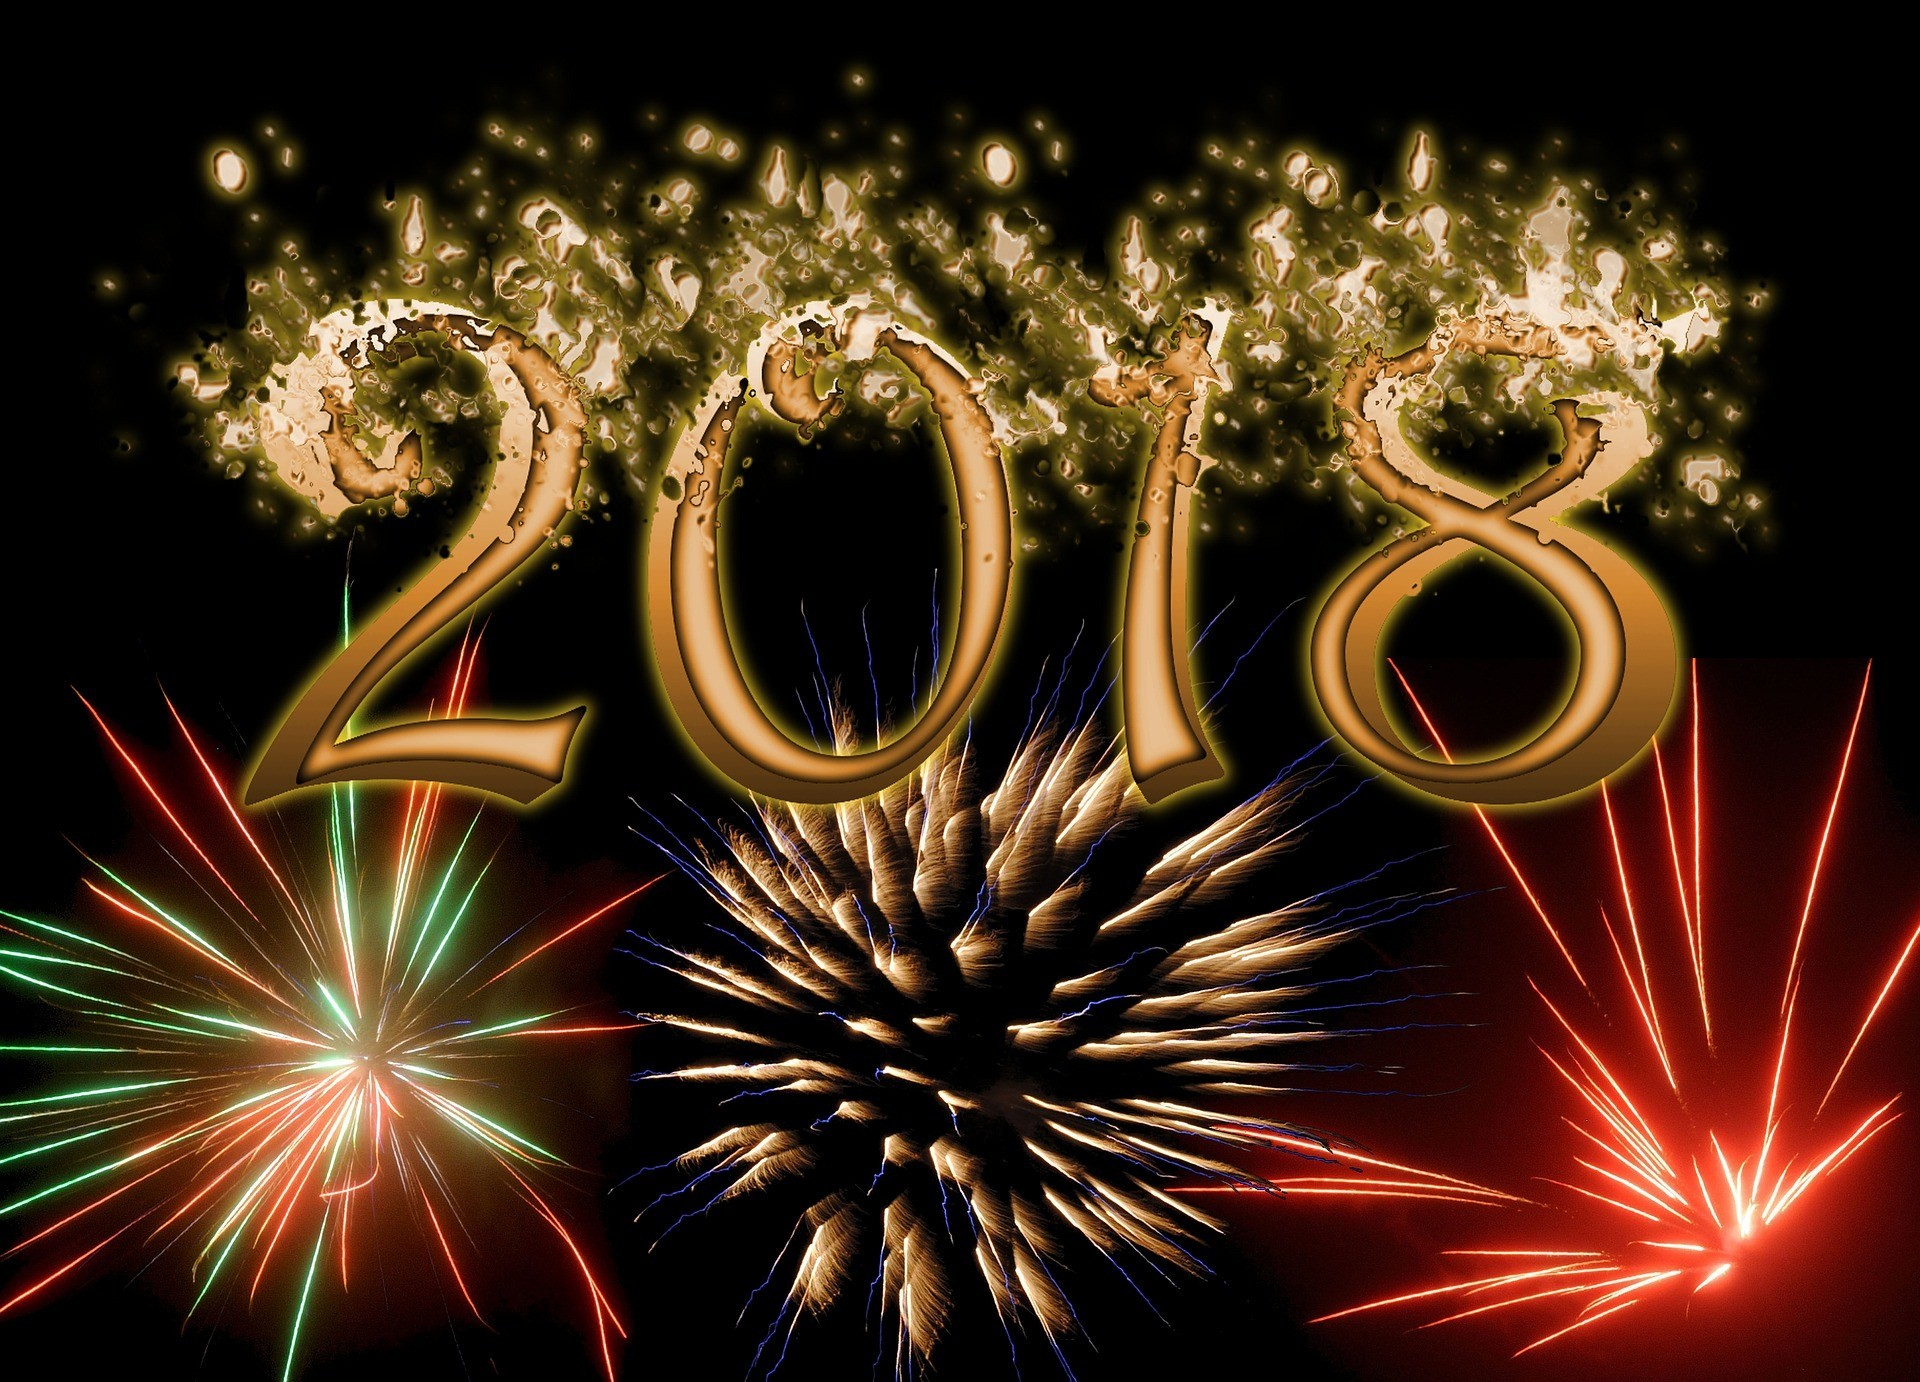 new year hd wallpaper 2018 can also be used as happy new year greeting download tagsfull